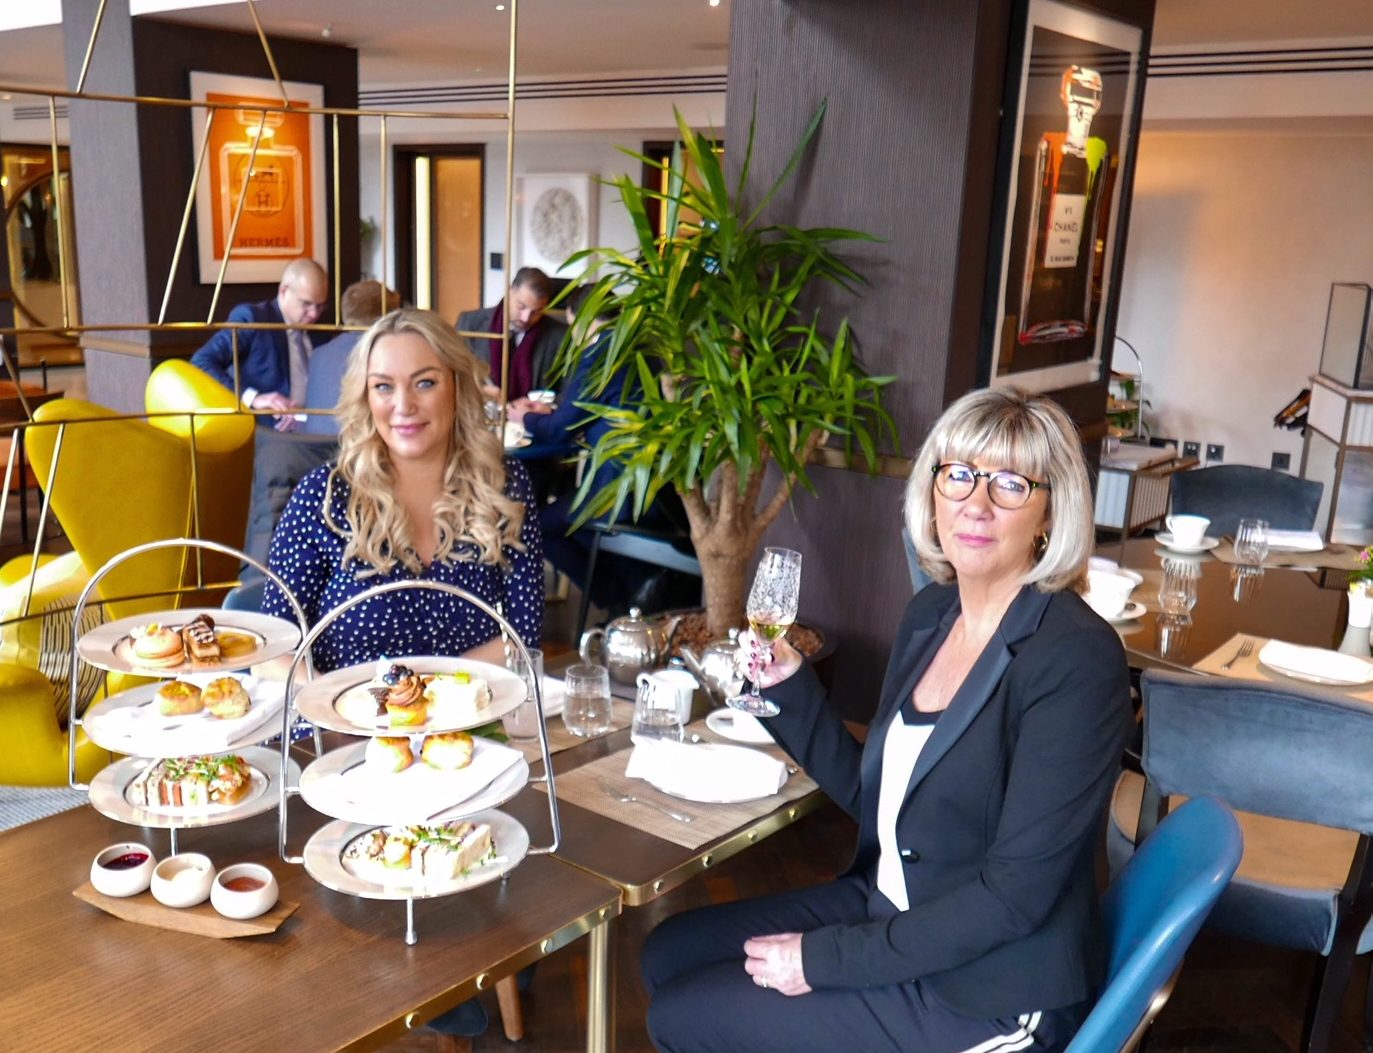 Celebrating Mother's Day at Galvin at The Athenaeum